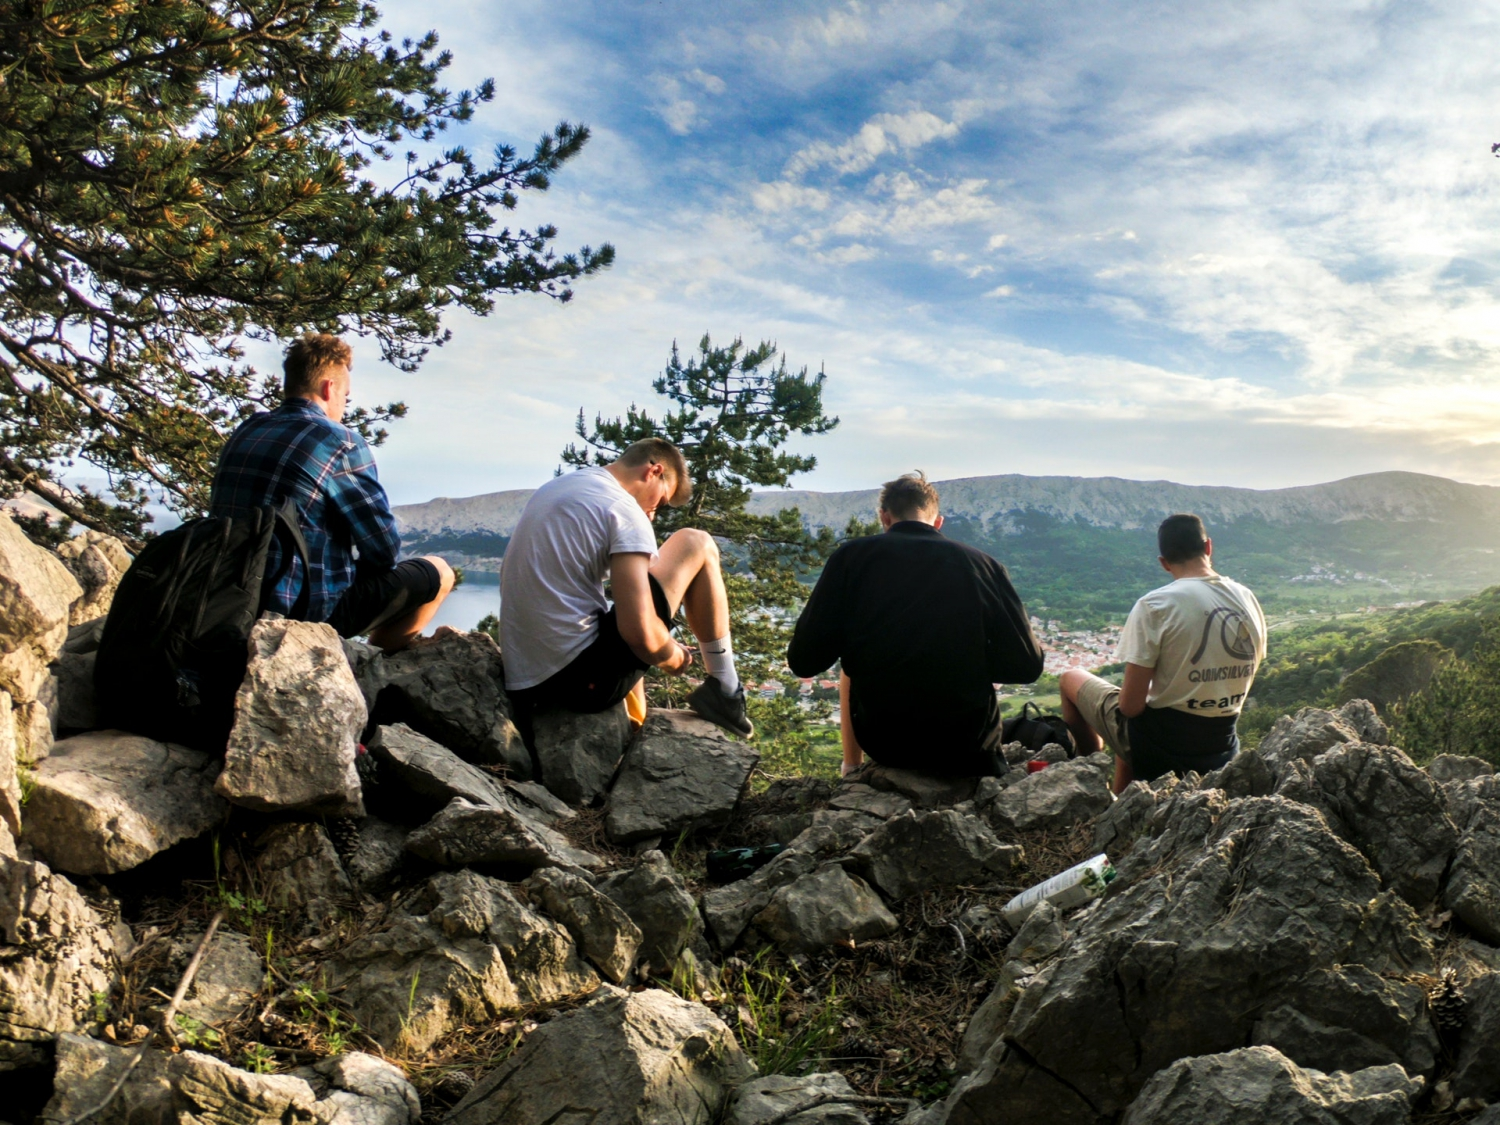 6 Exciting Trips To Take With A Group Of Friends